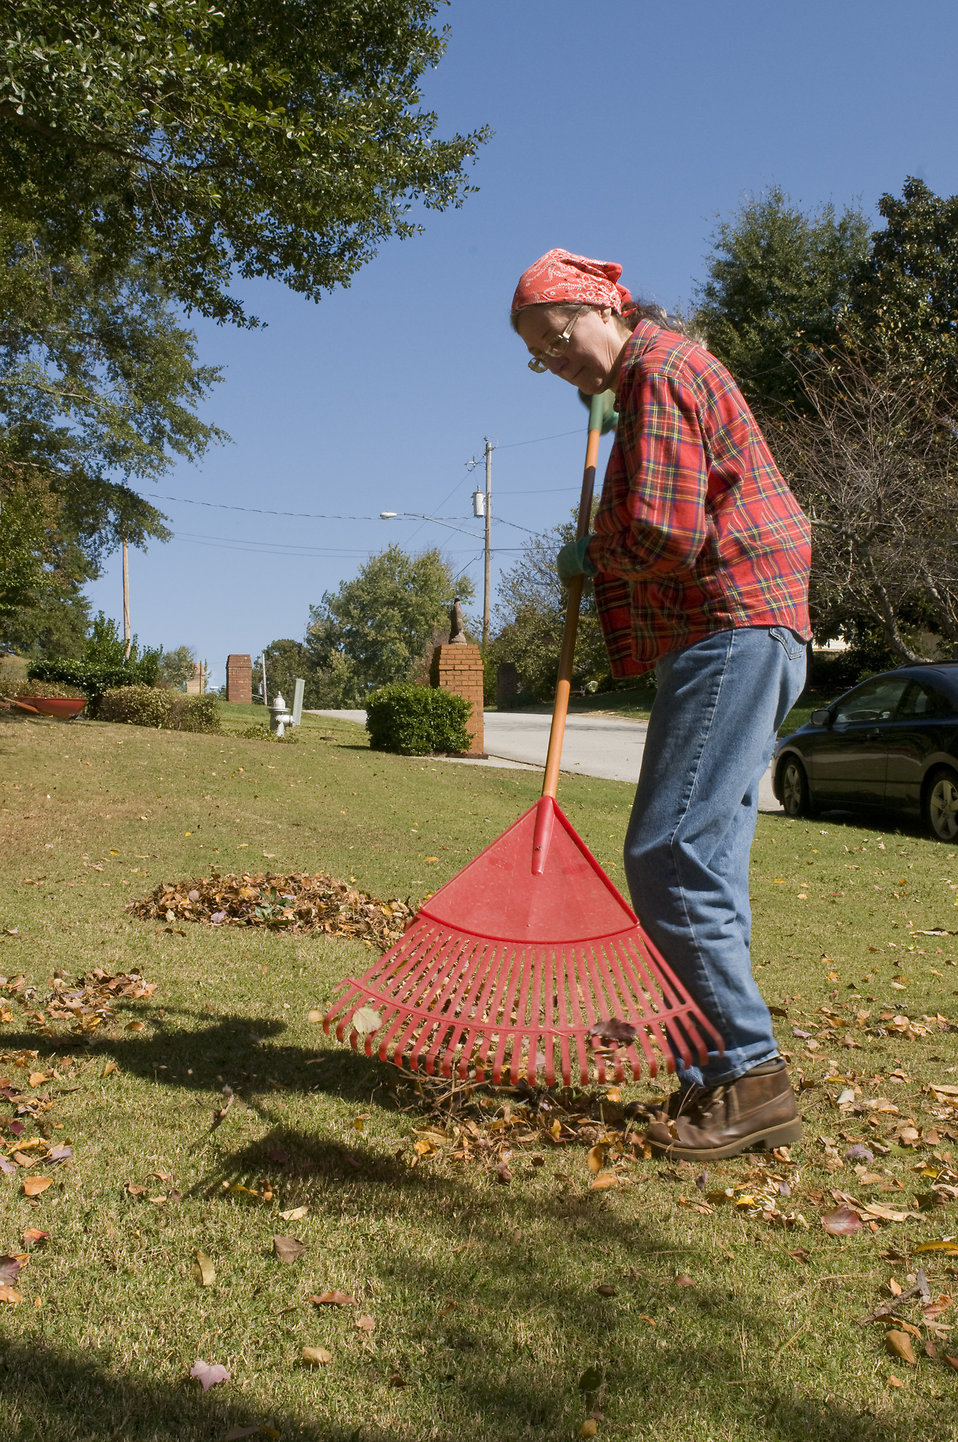 http://res.freestockphotos.biz/pictures/15/15247-a-woman-raking-leaves-on-her-lawn-pv.jpg